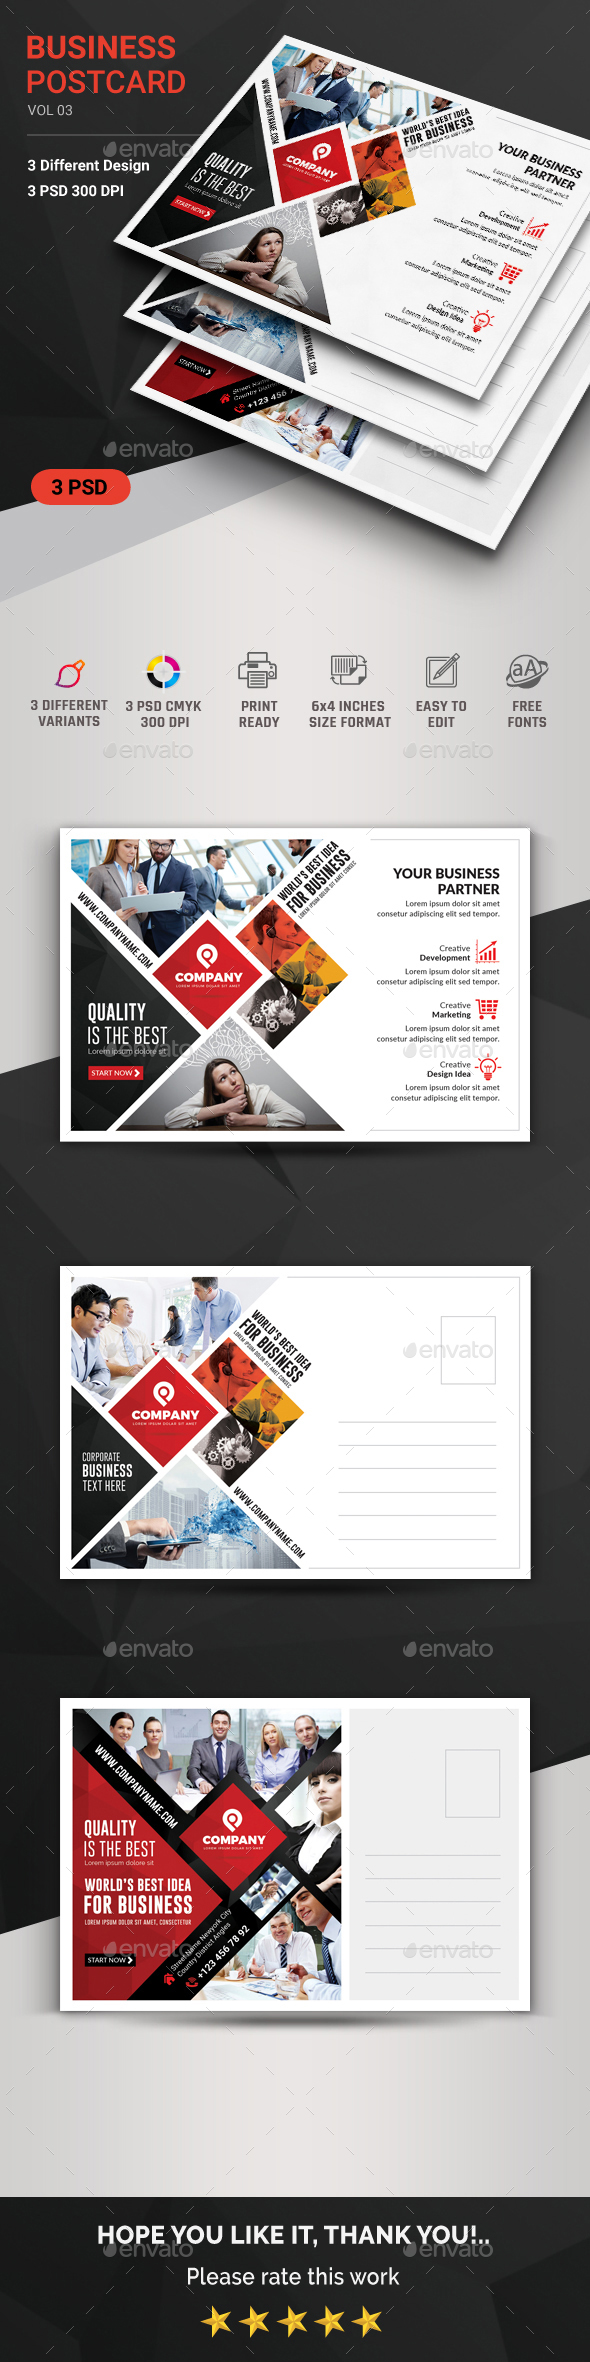 Corporate Postcard Graphics, Designs & Templates